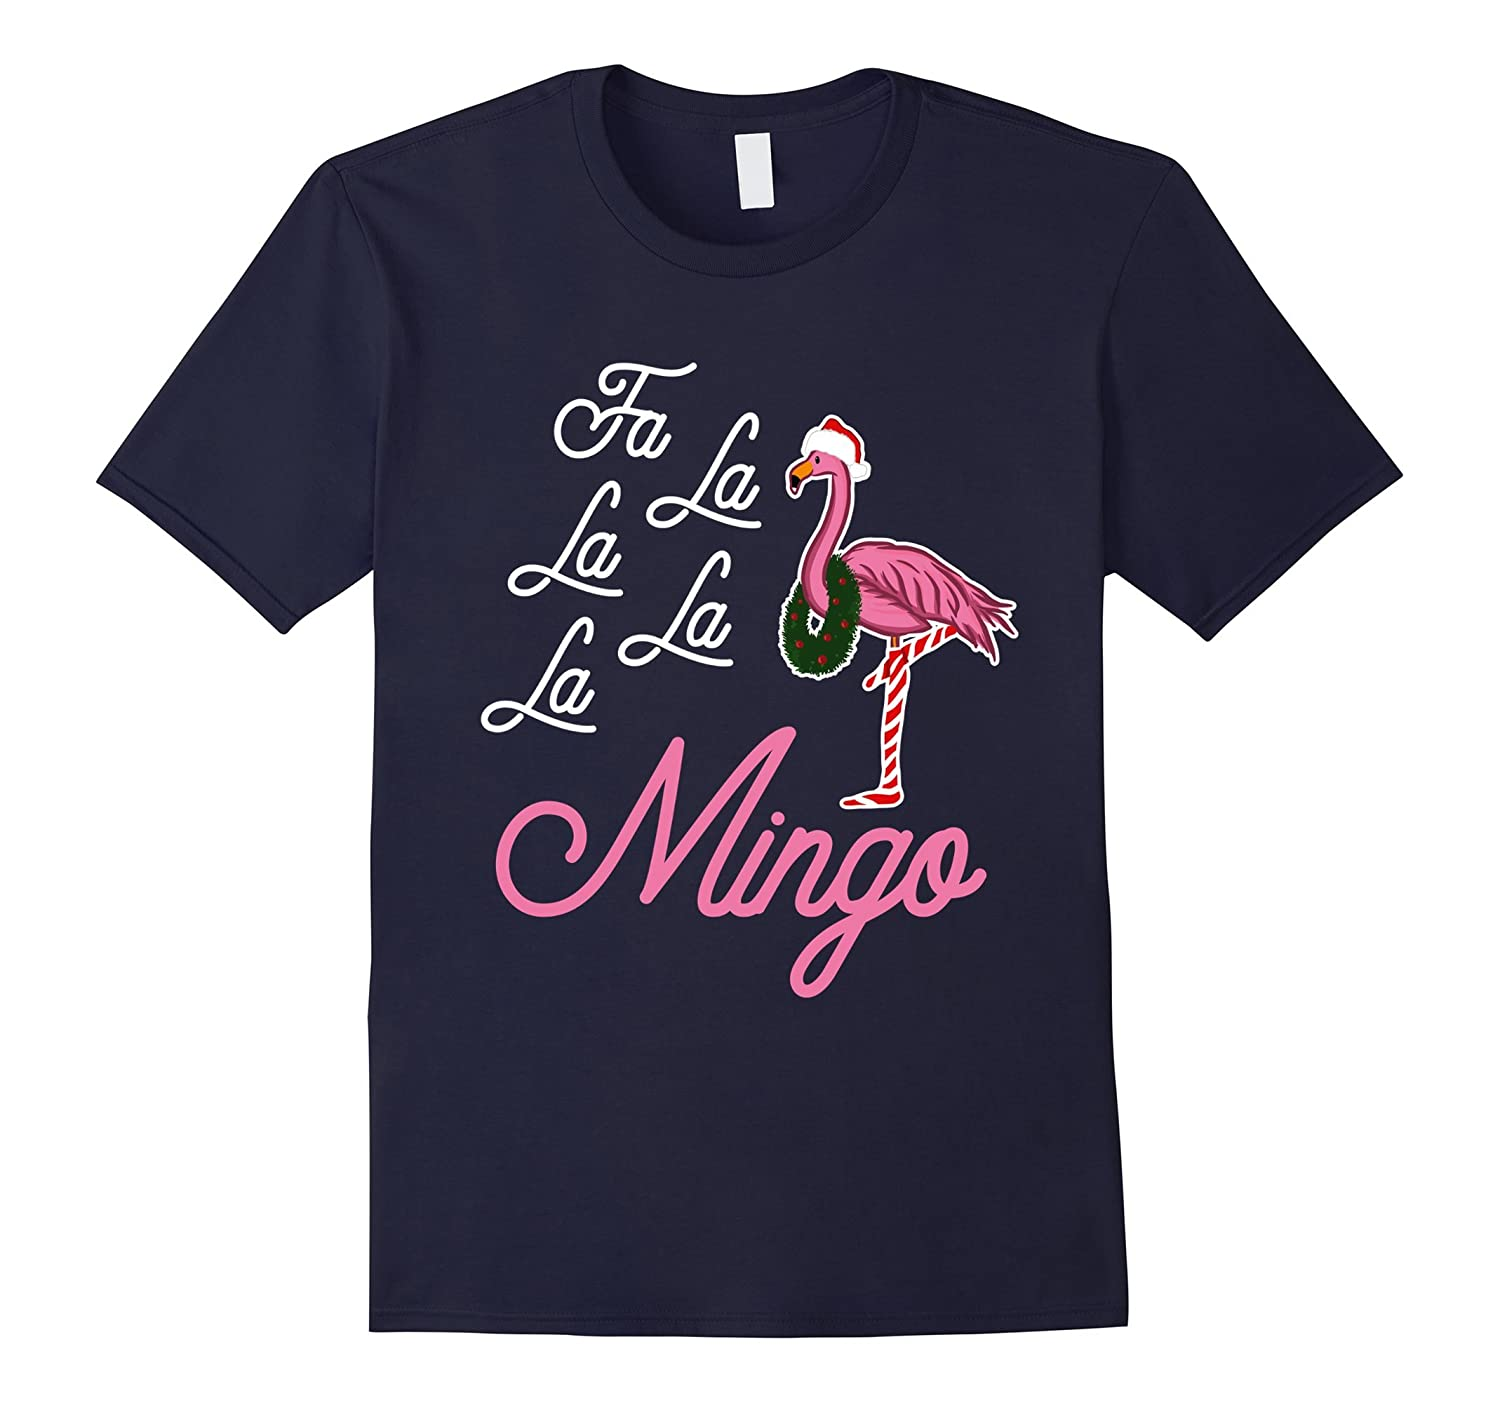 flamingo christmas shirt funny xmas gifts - Men Women Kids-FL